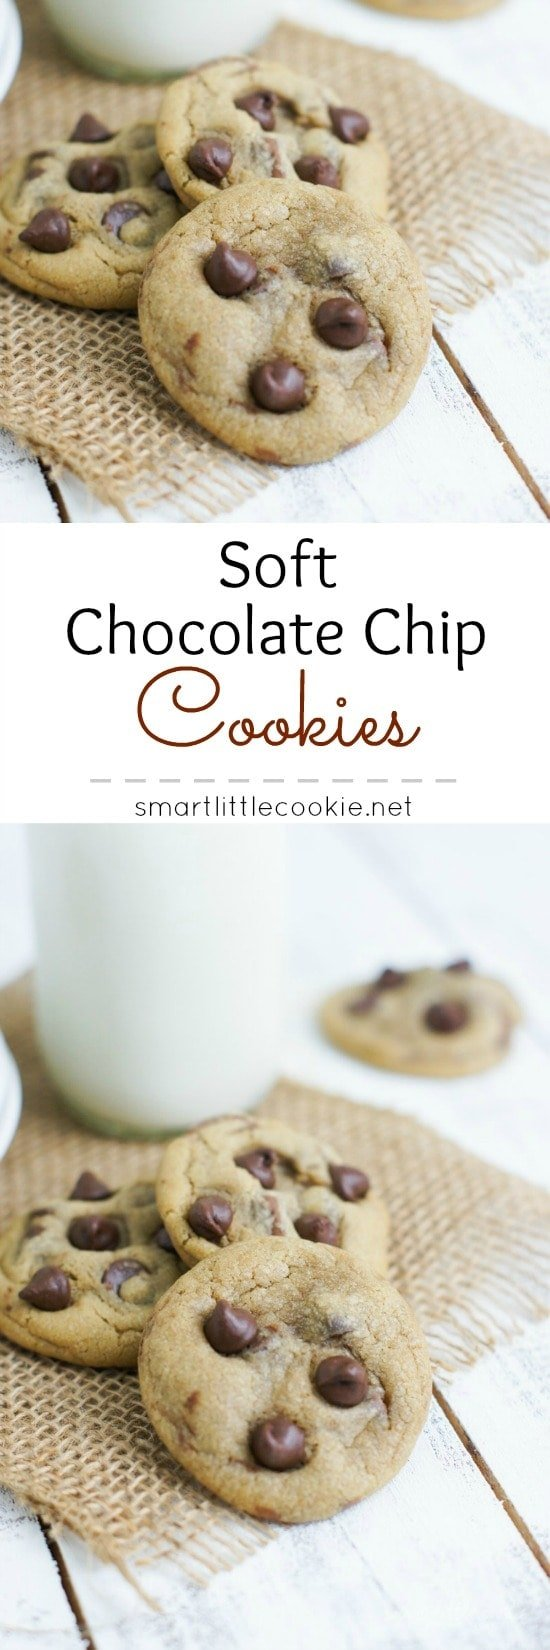 The best chocolate chip cookies: soft, buttery and with lots of chocolate.